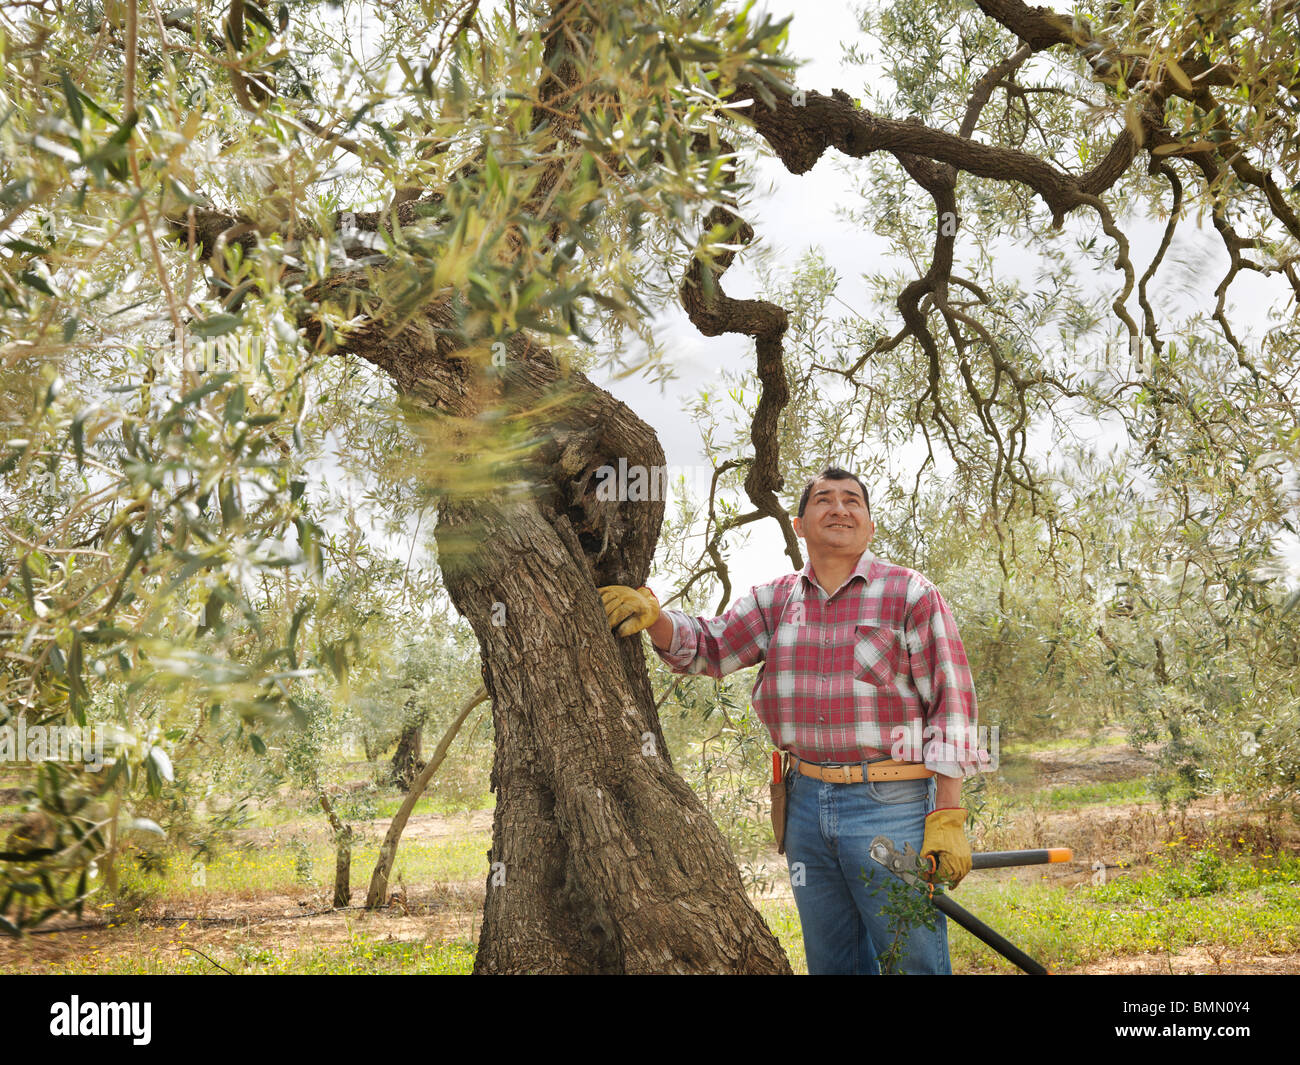 Man pausing while pruning olive branches - Stock Image